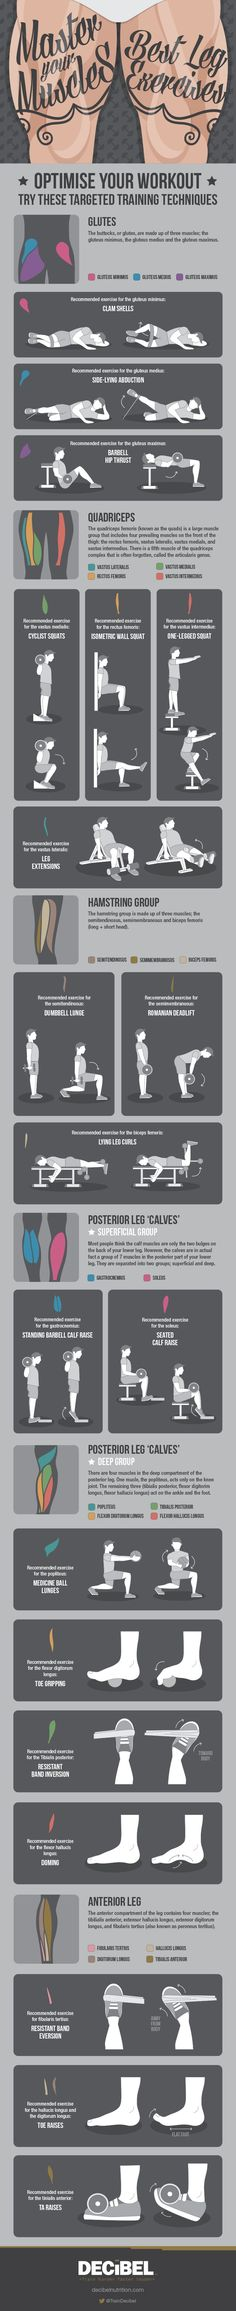 Master Your Muscles: Best Leg Exercises #infographic #Exercise #Health #Fitness #Gym #Workout #Leg #LegExercise